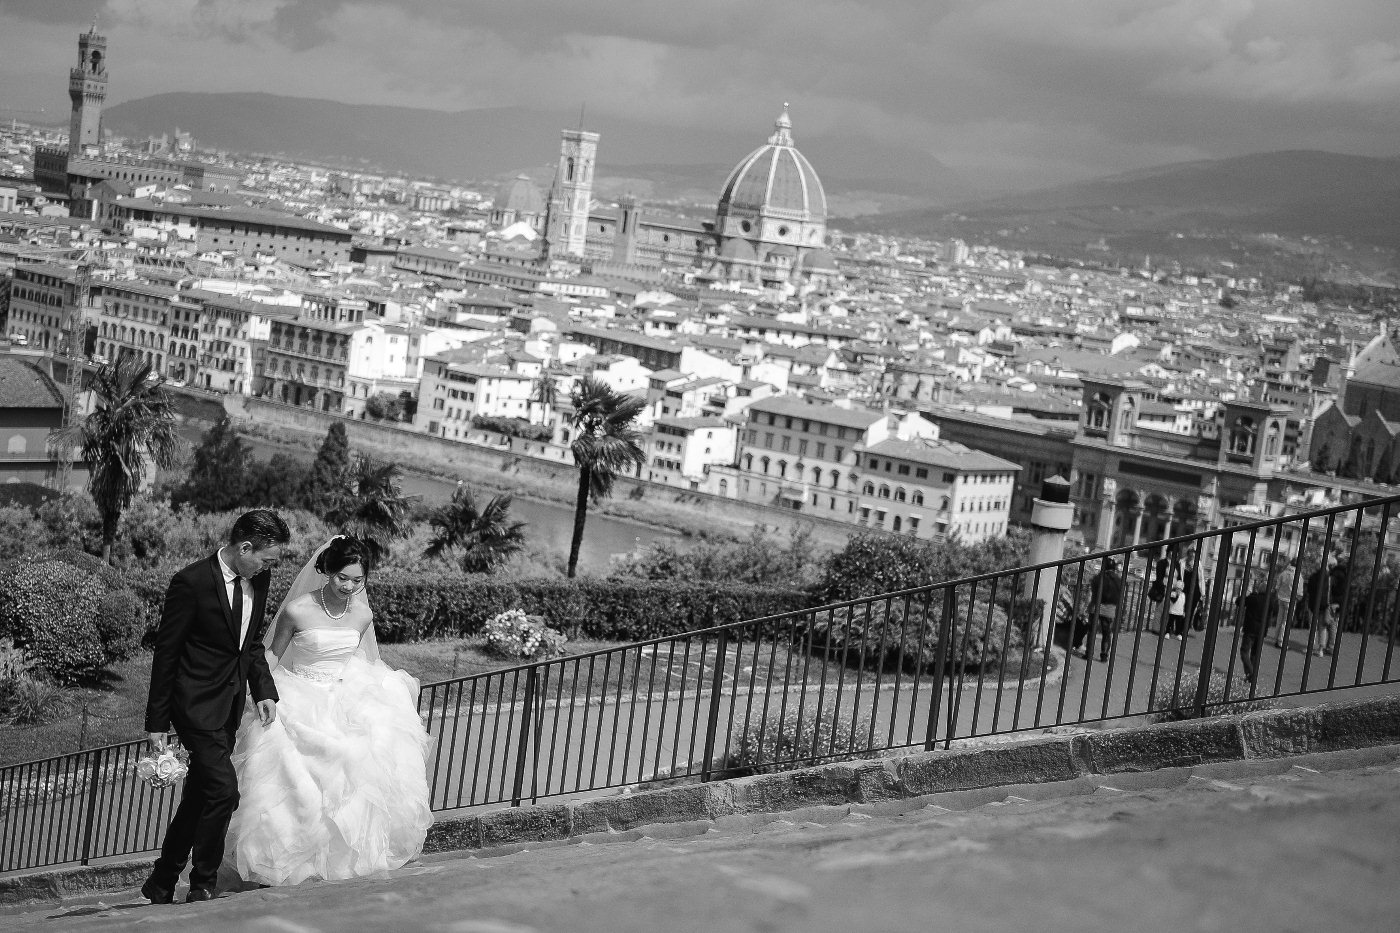 wedding photo tuscany_10.jpg